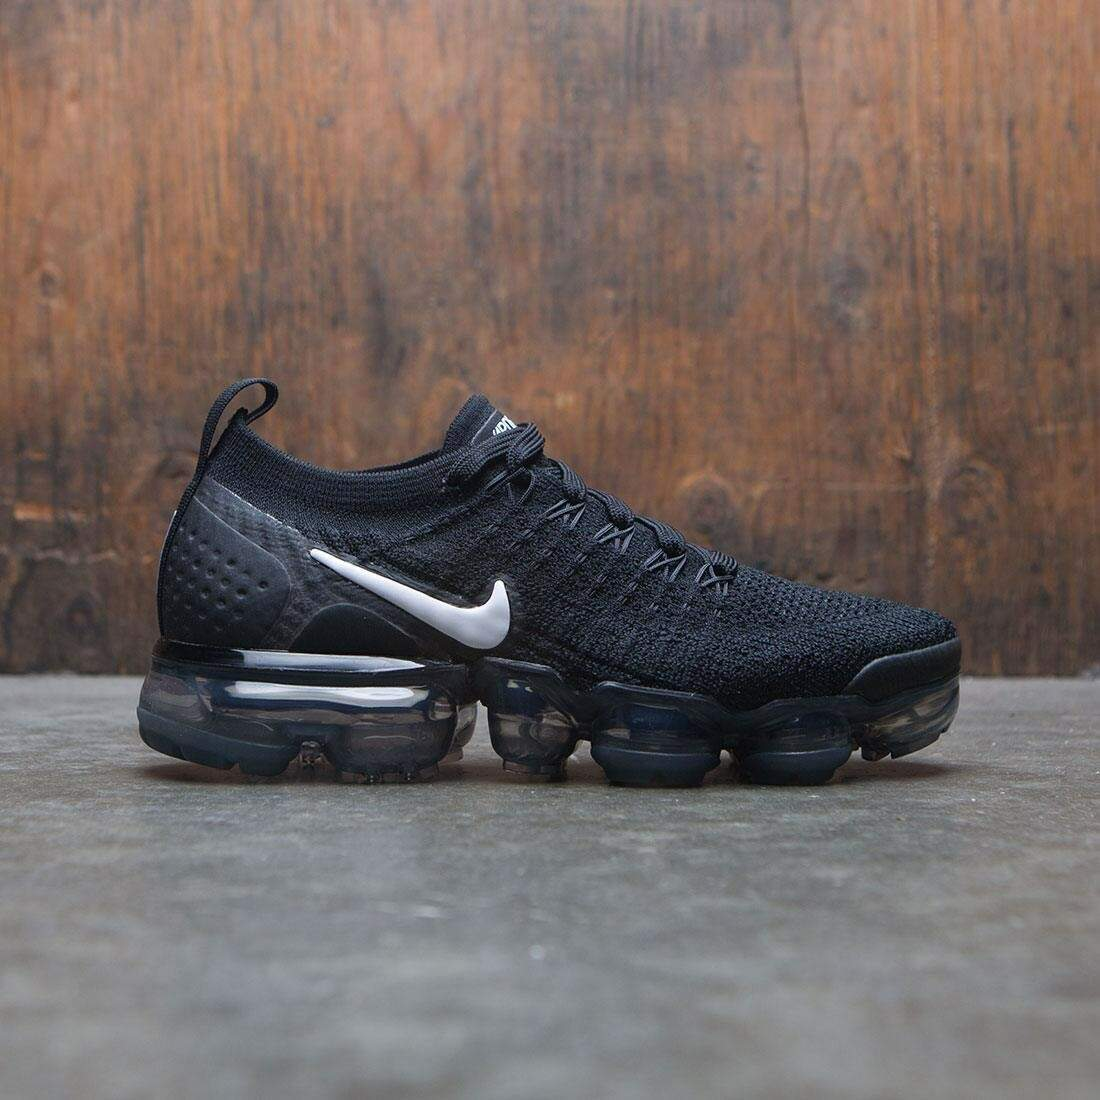 Air VaporMax 2 Flyknit Black / Dark Grey / Metallic Silver / White Masculino